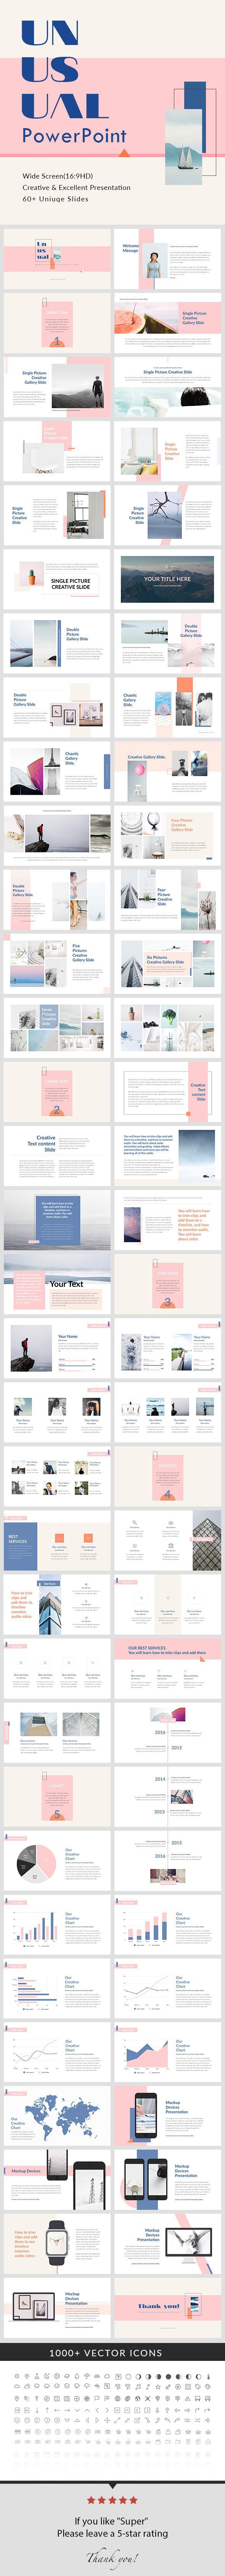 Unusual - PowerPoint Presentation - Creative PowerPoint Templates